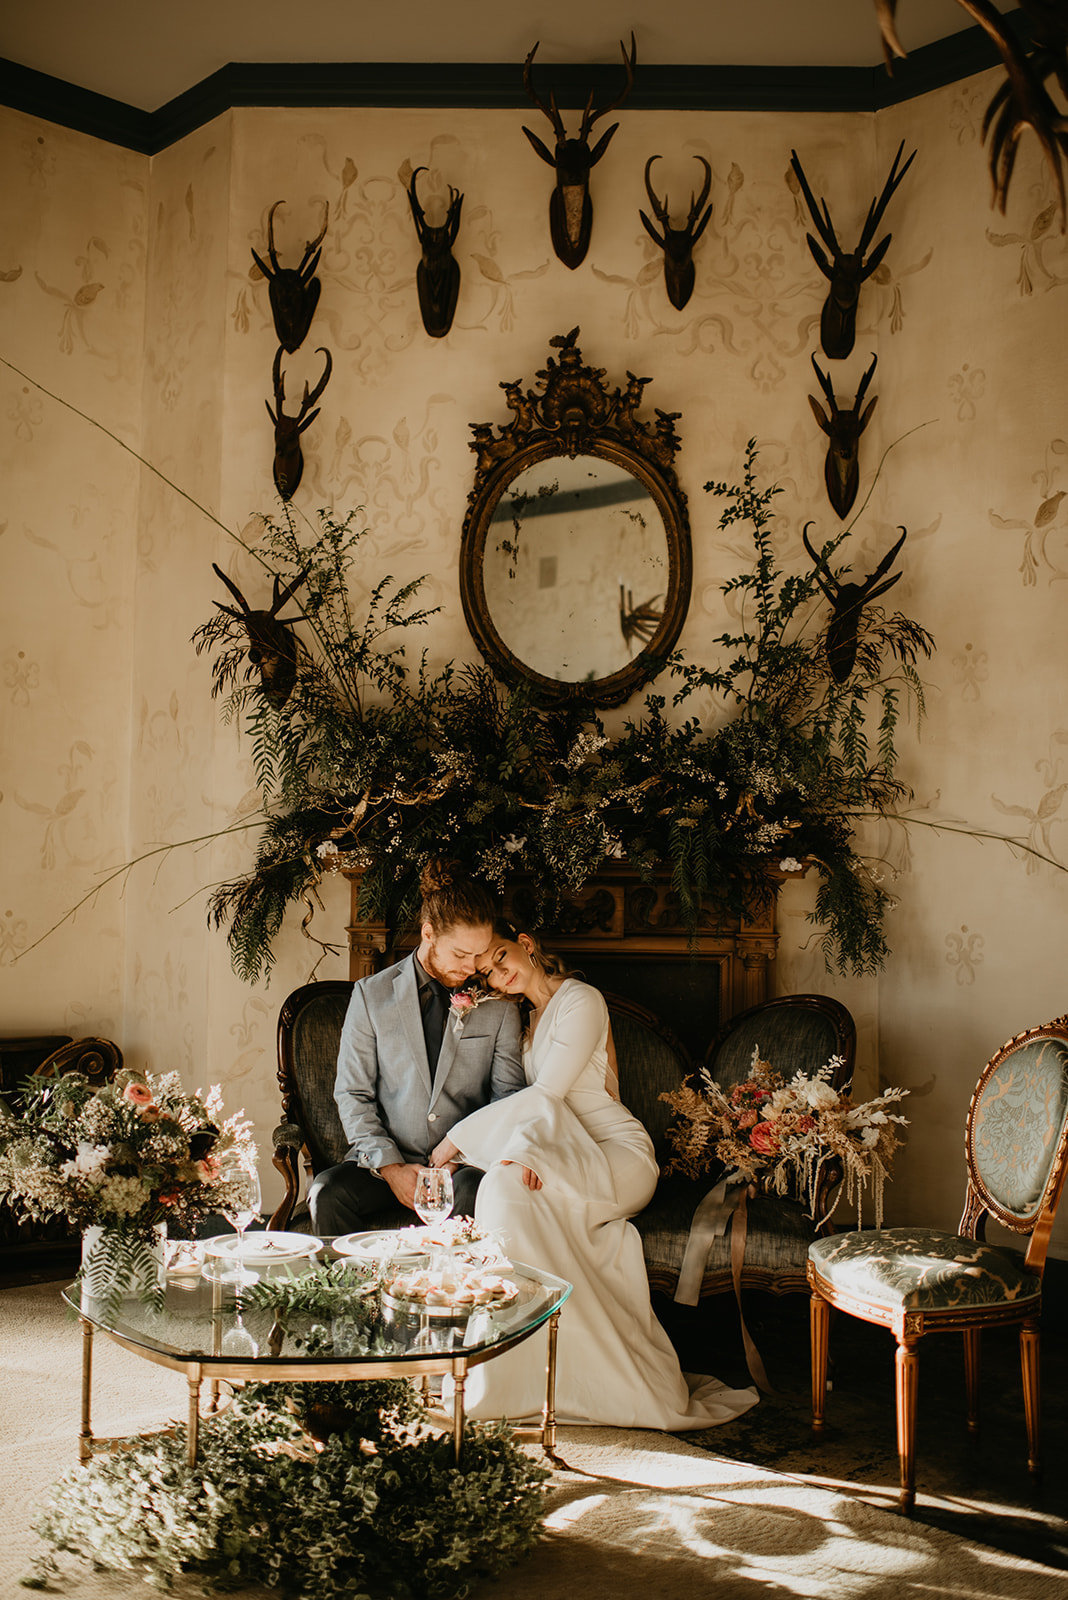 Britty + Beau - Elopement - The Ruins_ Seattle_ WA - Kamra Fuller Photography - Runaway With Me Elopement Collective-196